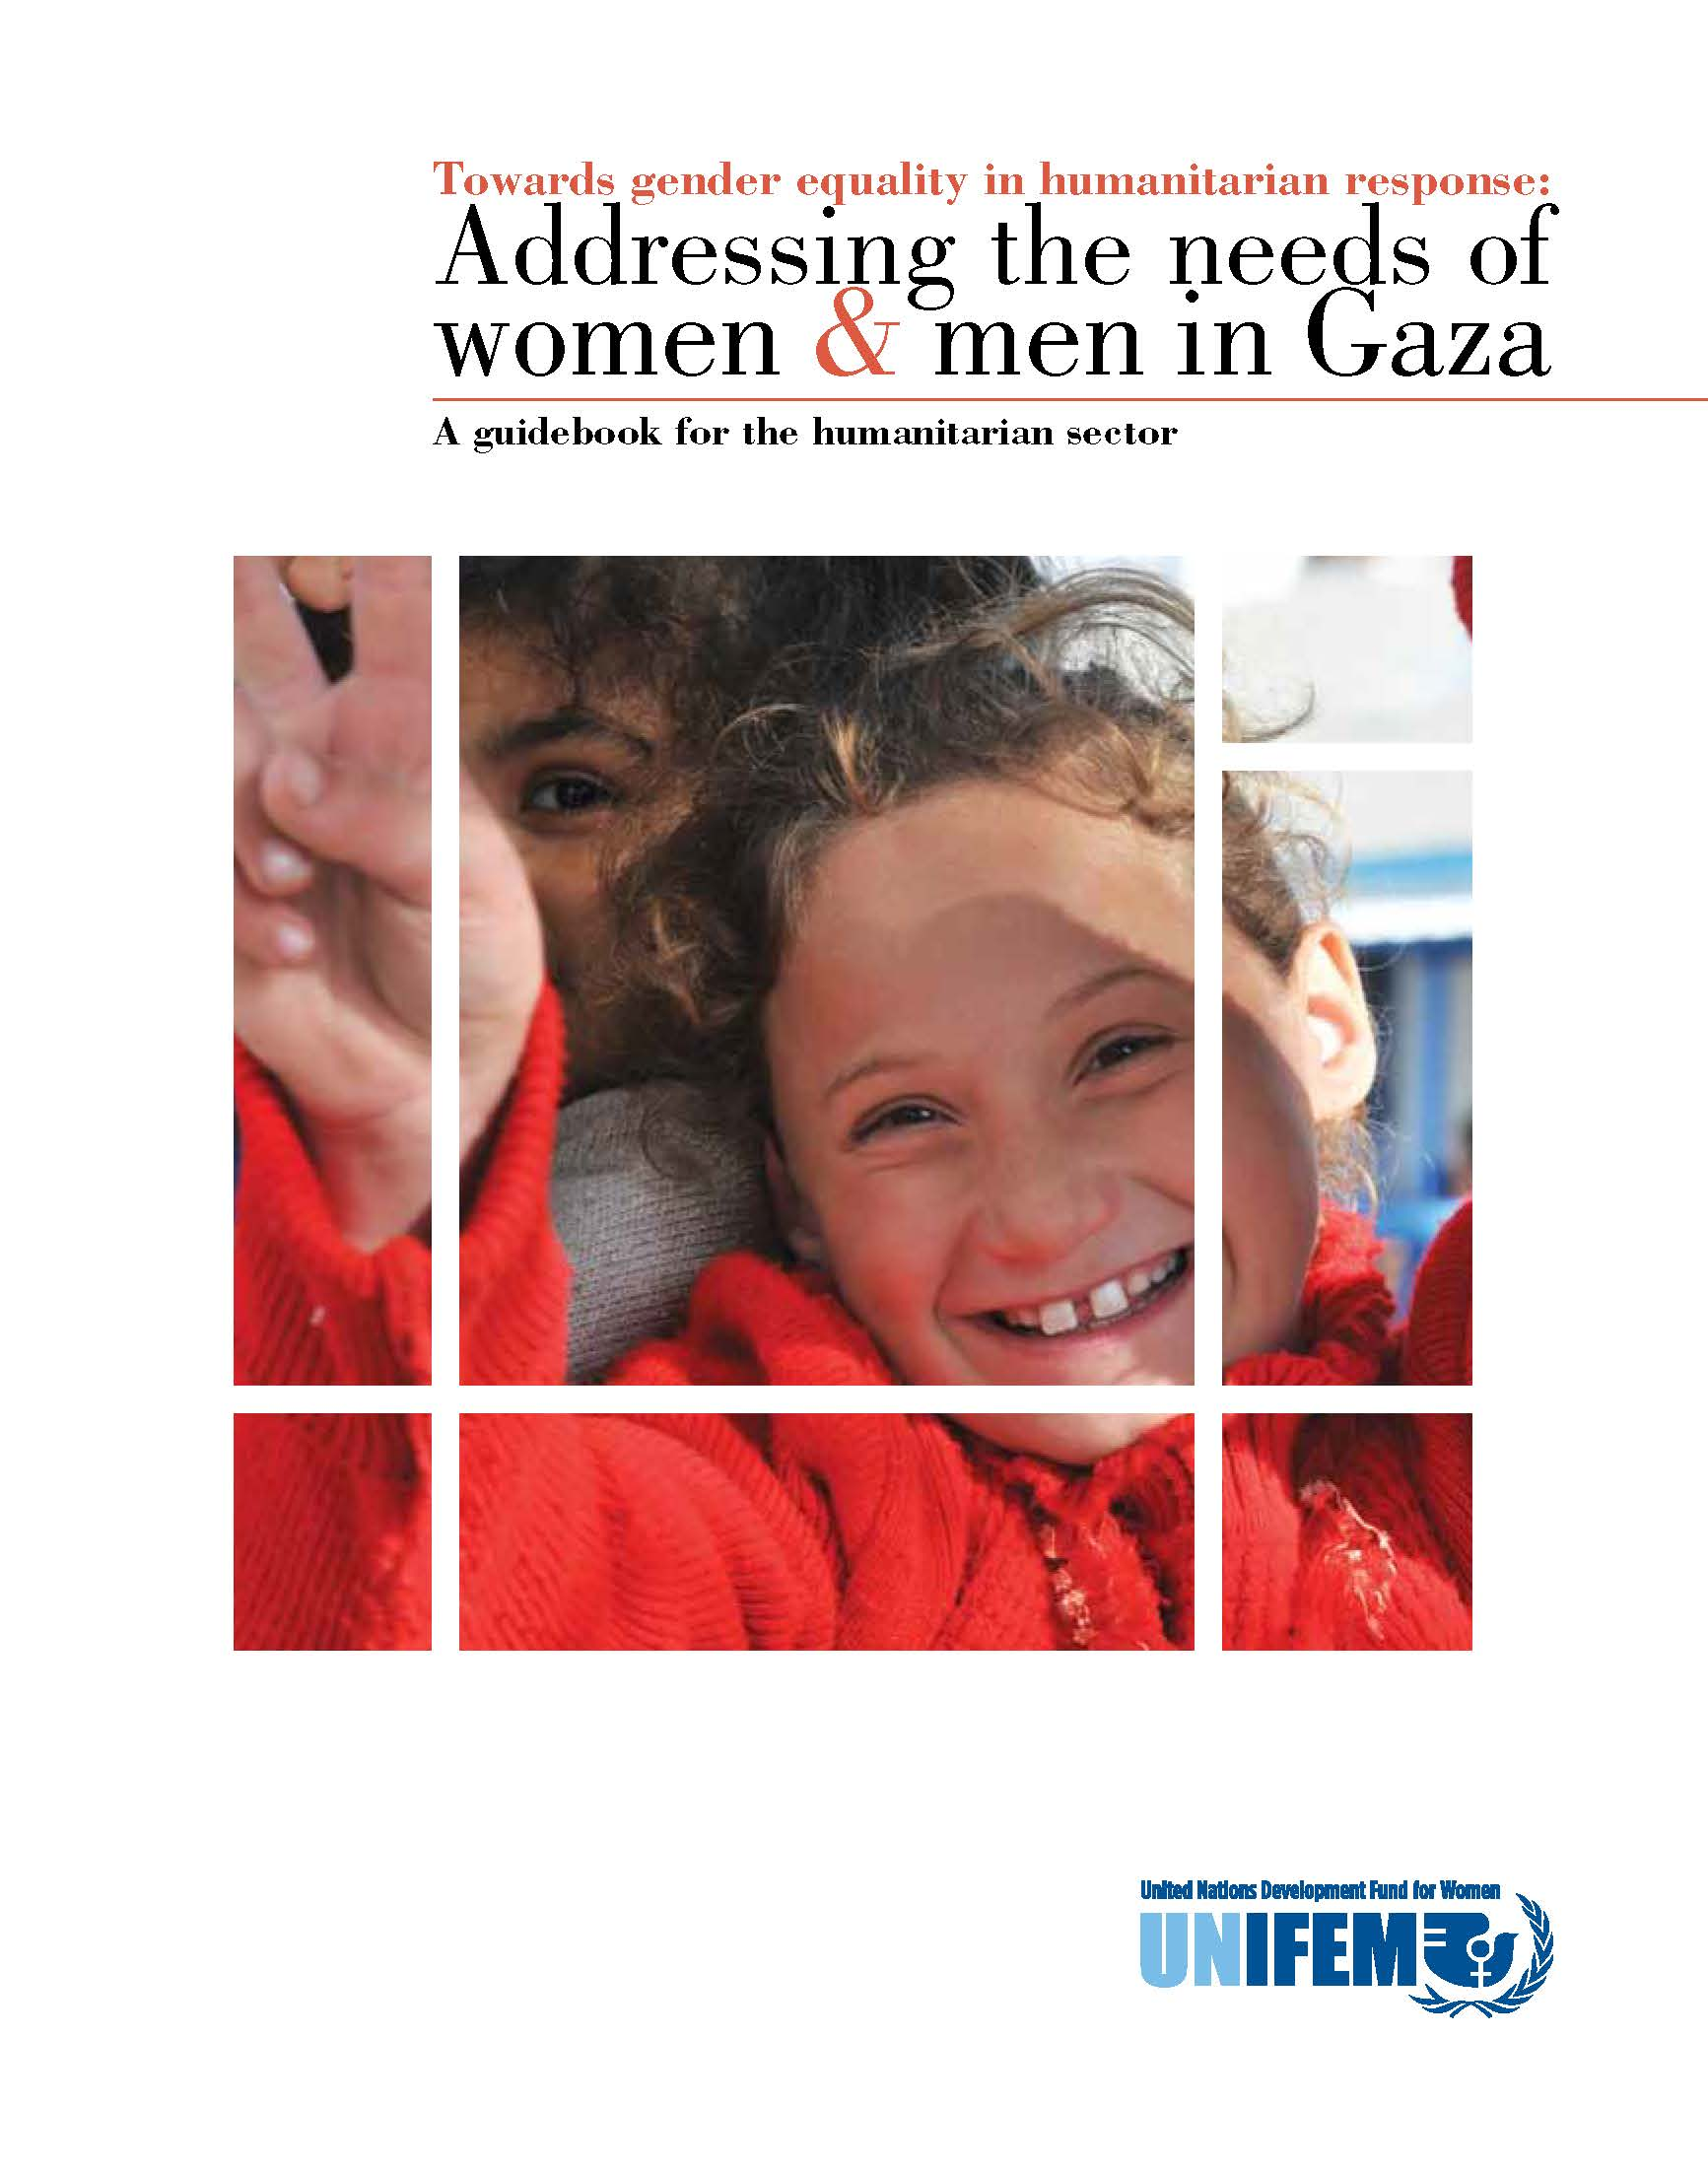 Towards Gender Equality in Humanitarian Response: Addressing the Needs of Women and Men in Gaza. A Guidebook for the Humanitarian Sector